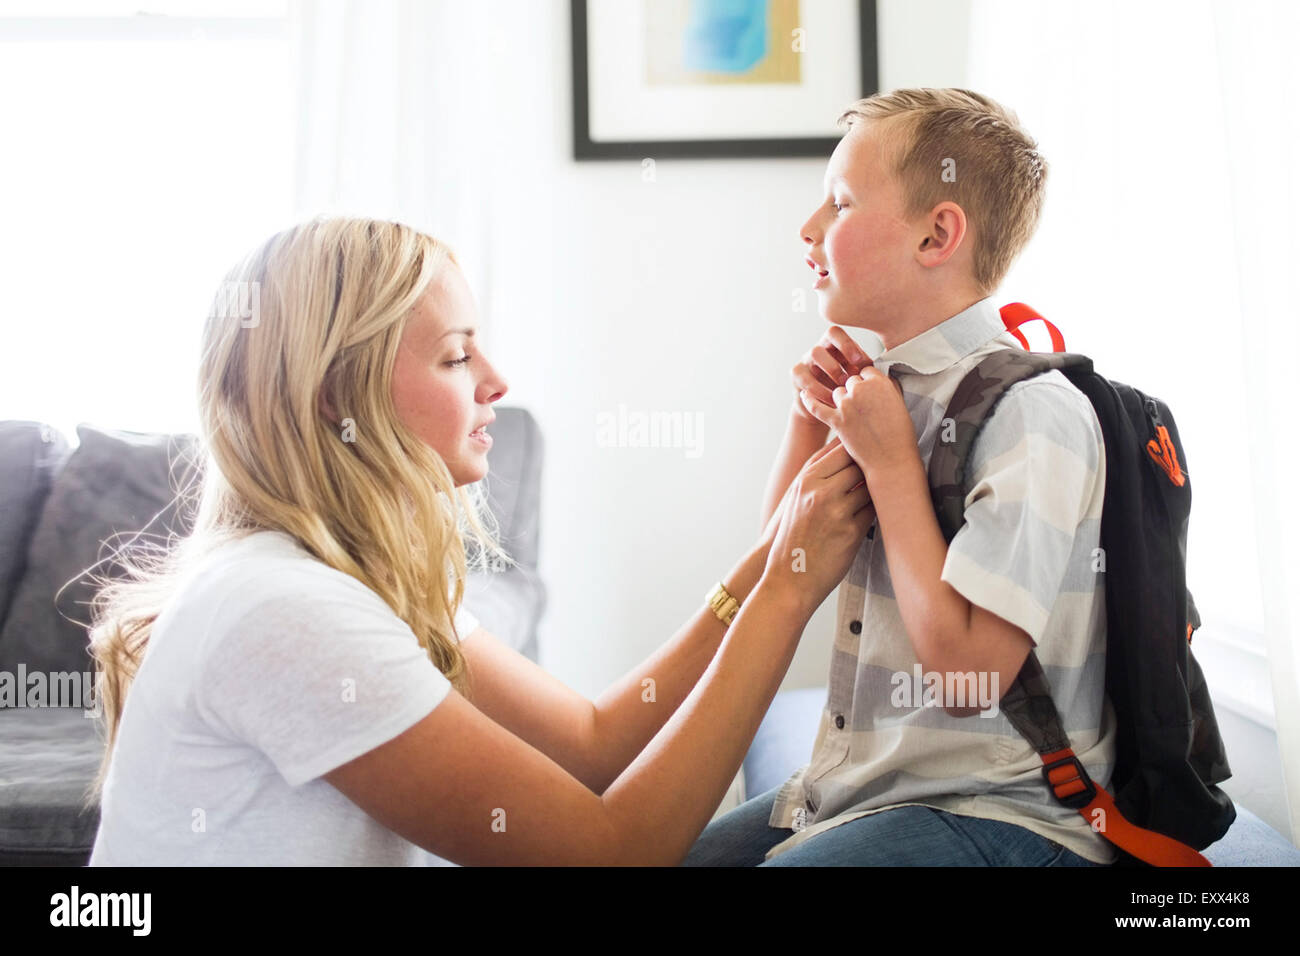 Mother helping son (6-7) buttoning shirt - Stock Image